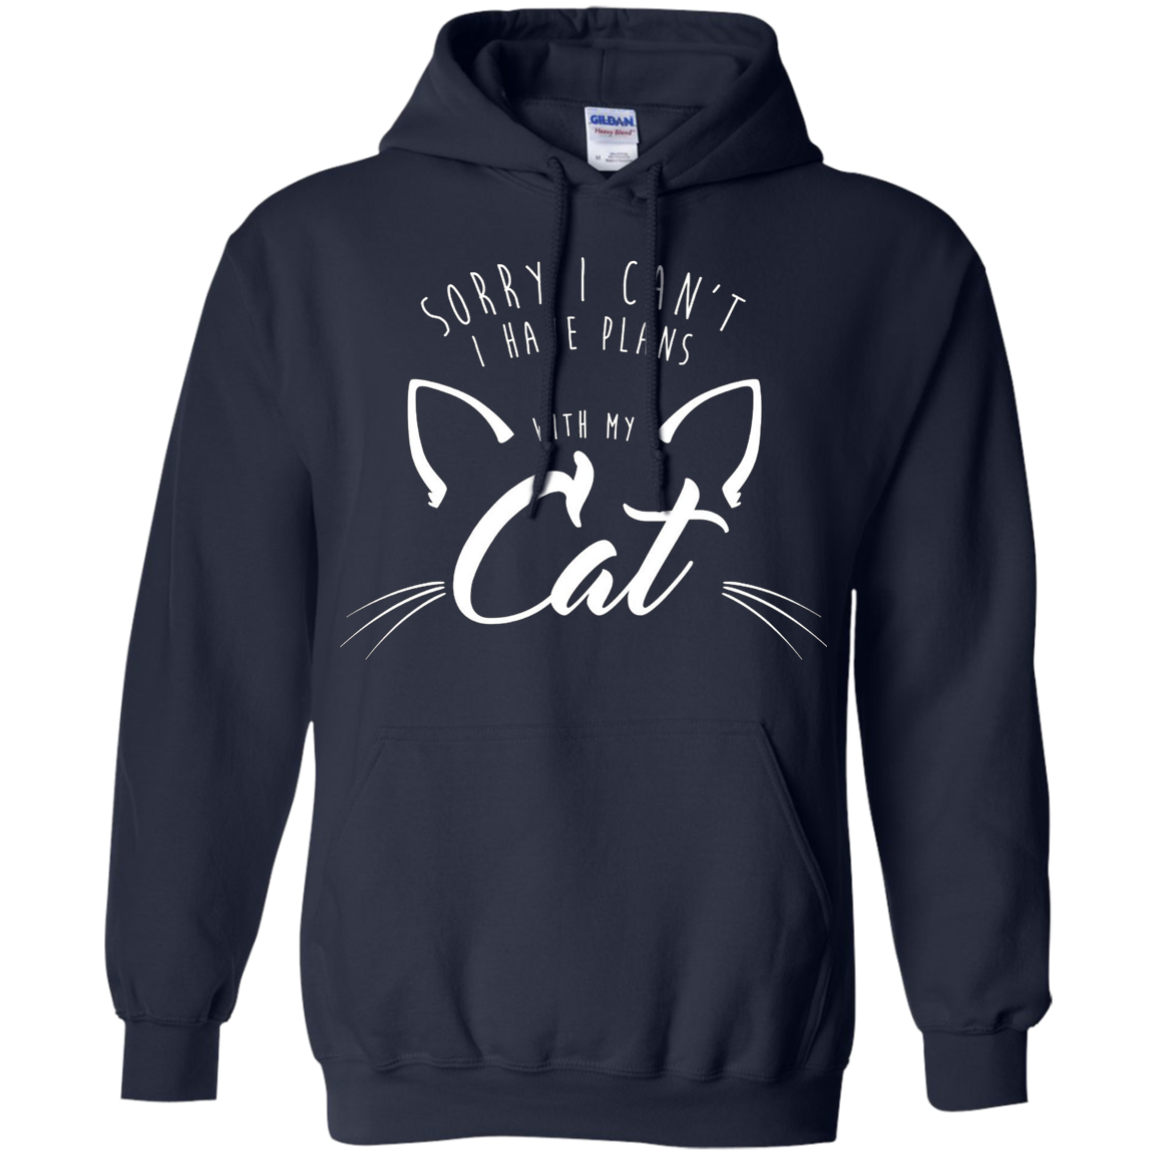 Sorry I Can't, I Have Plans With My Cat Shirt 2 Script Funny